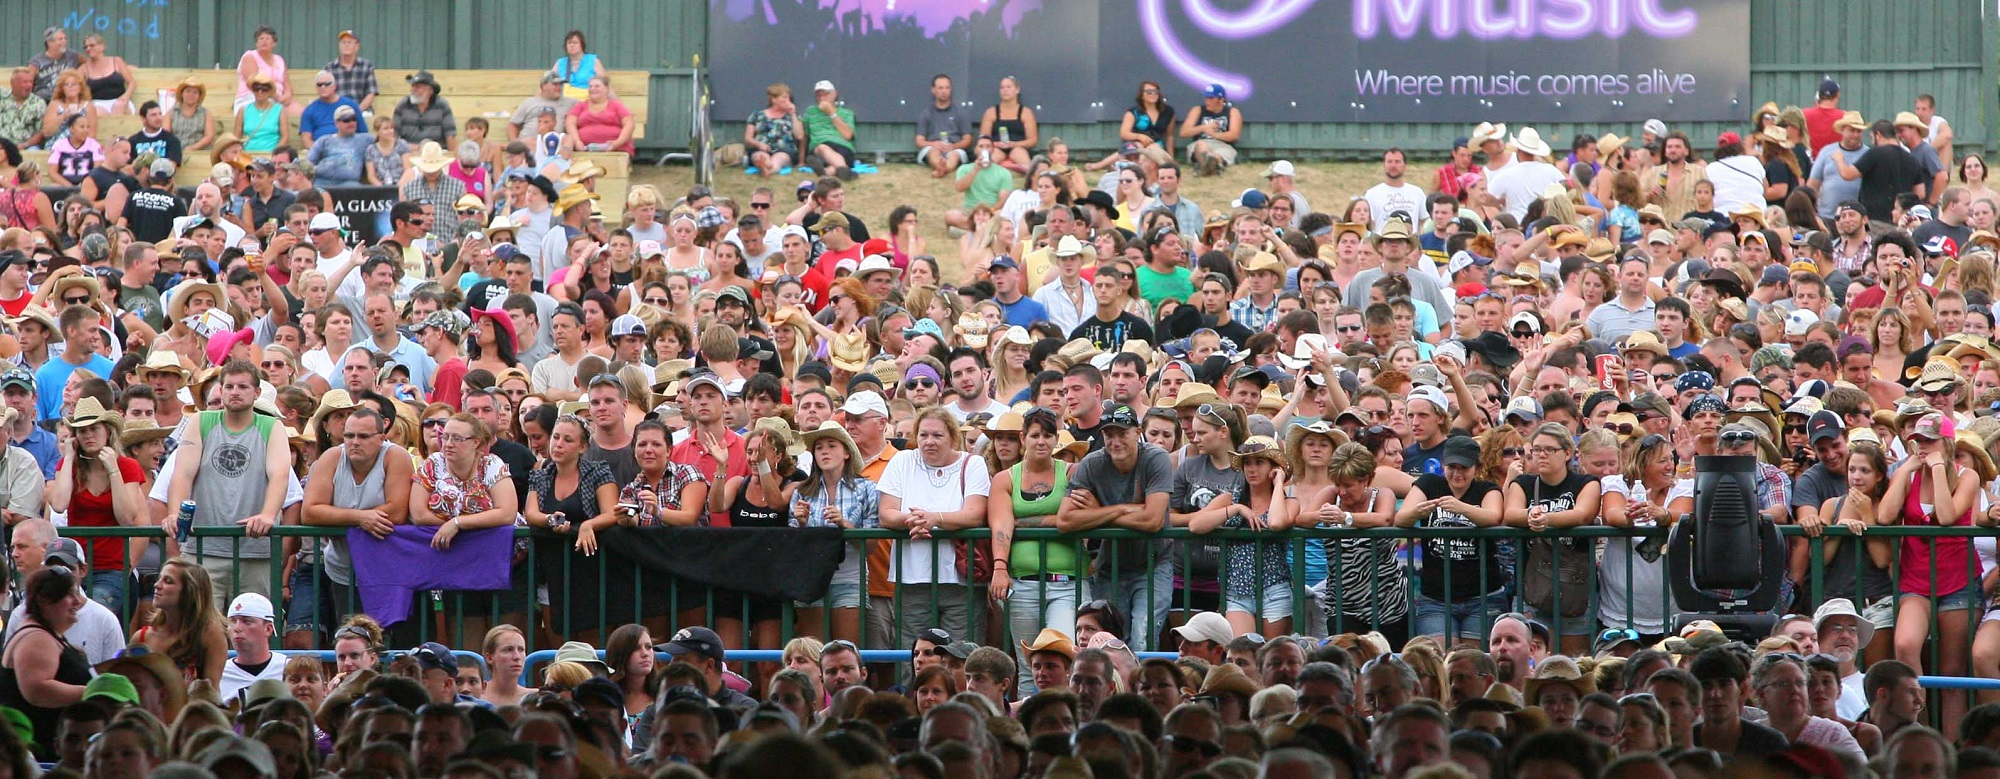 Fans standing on the Darien Lake lawn before a country show in 2011. (News file photo)